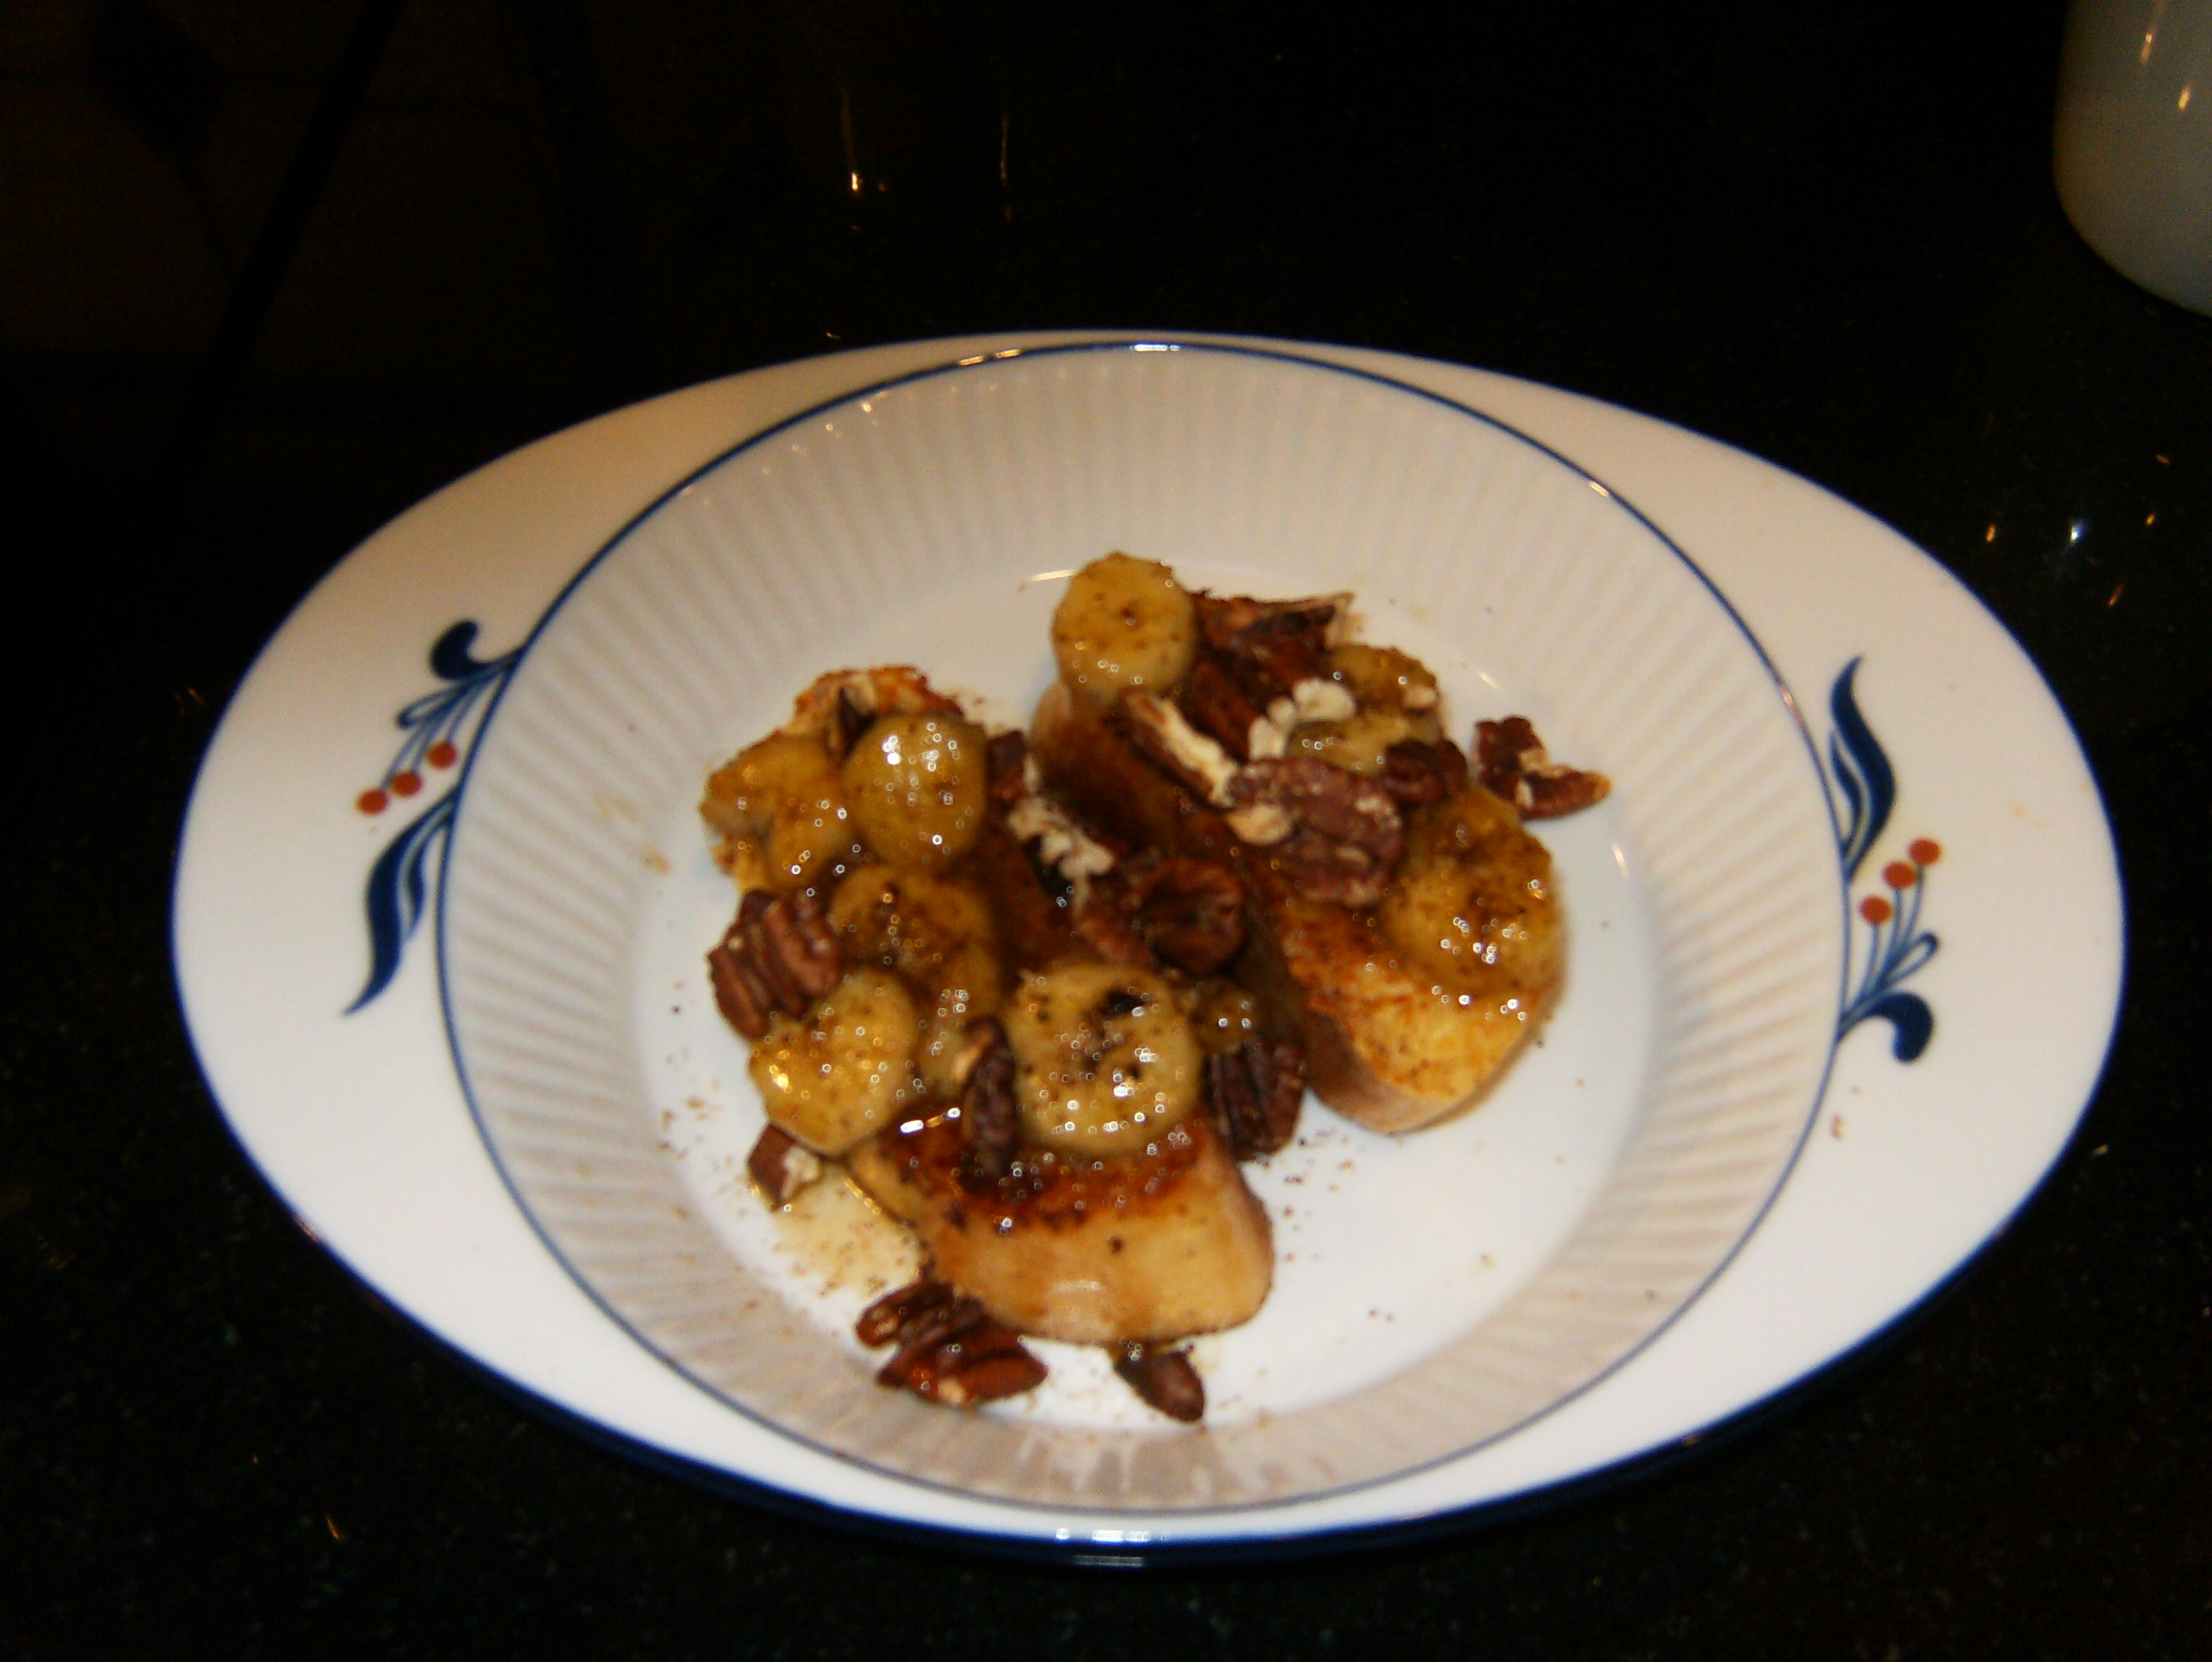 Pain Perdu by way of Bananas Foster